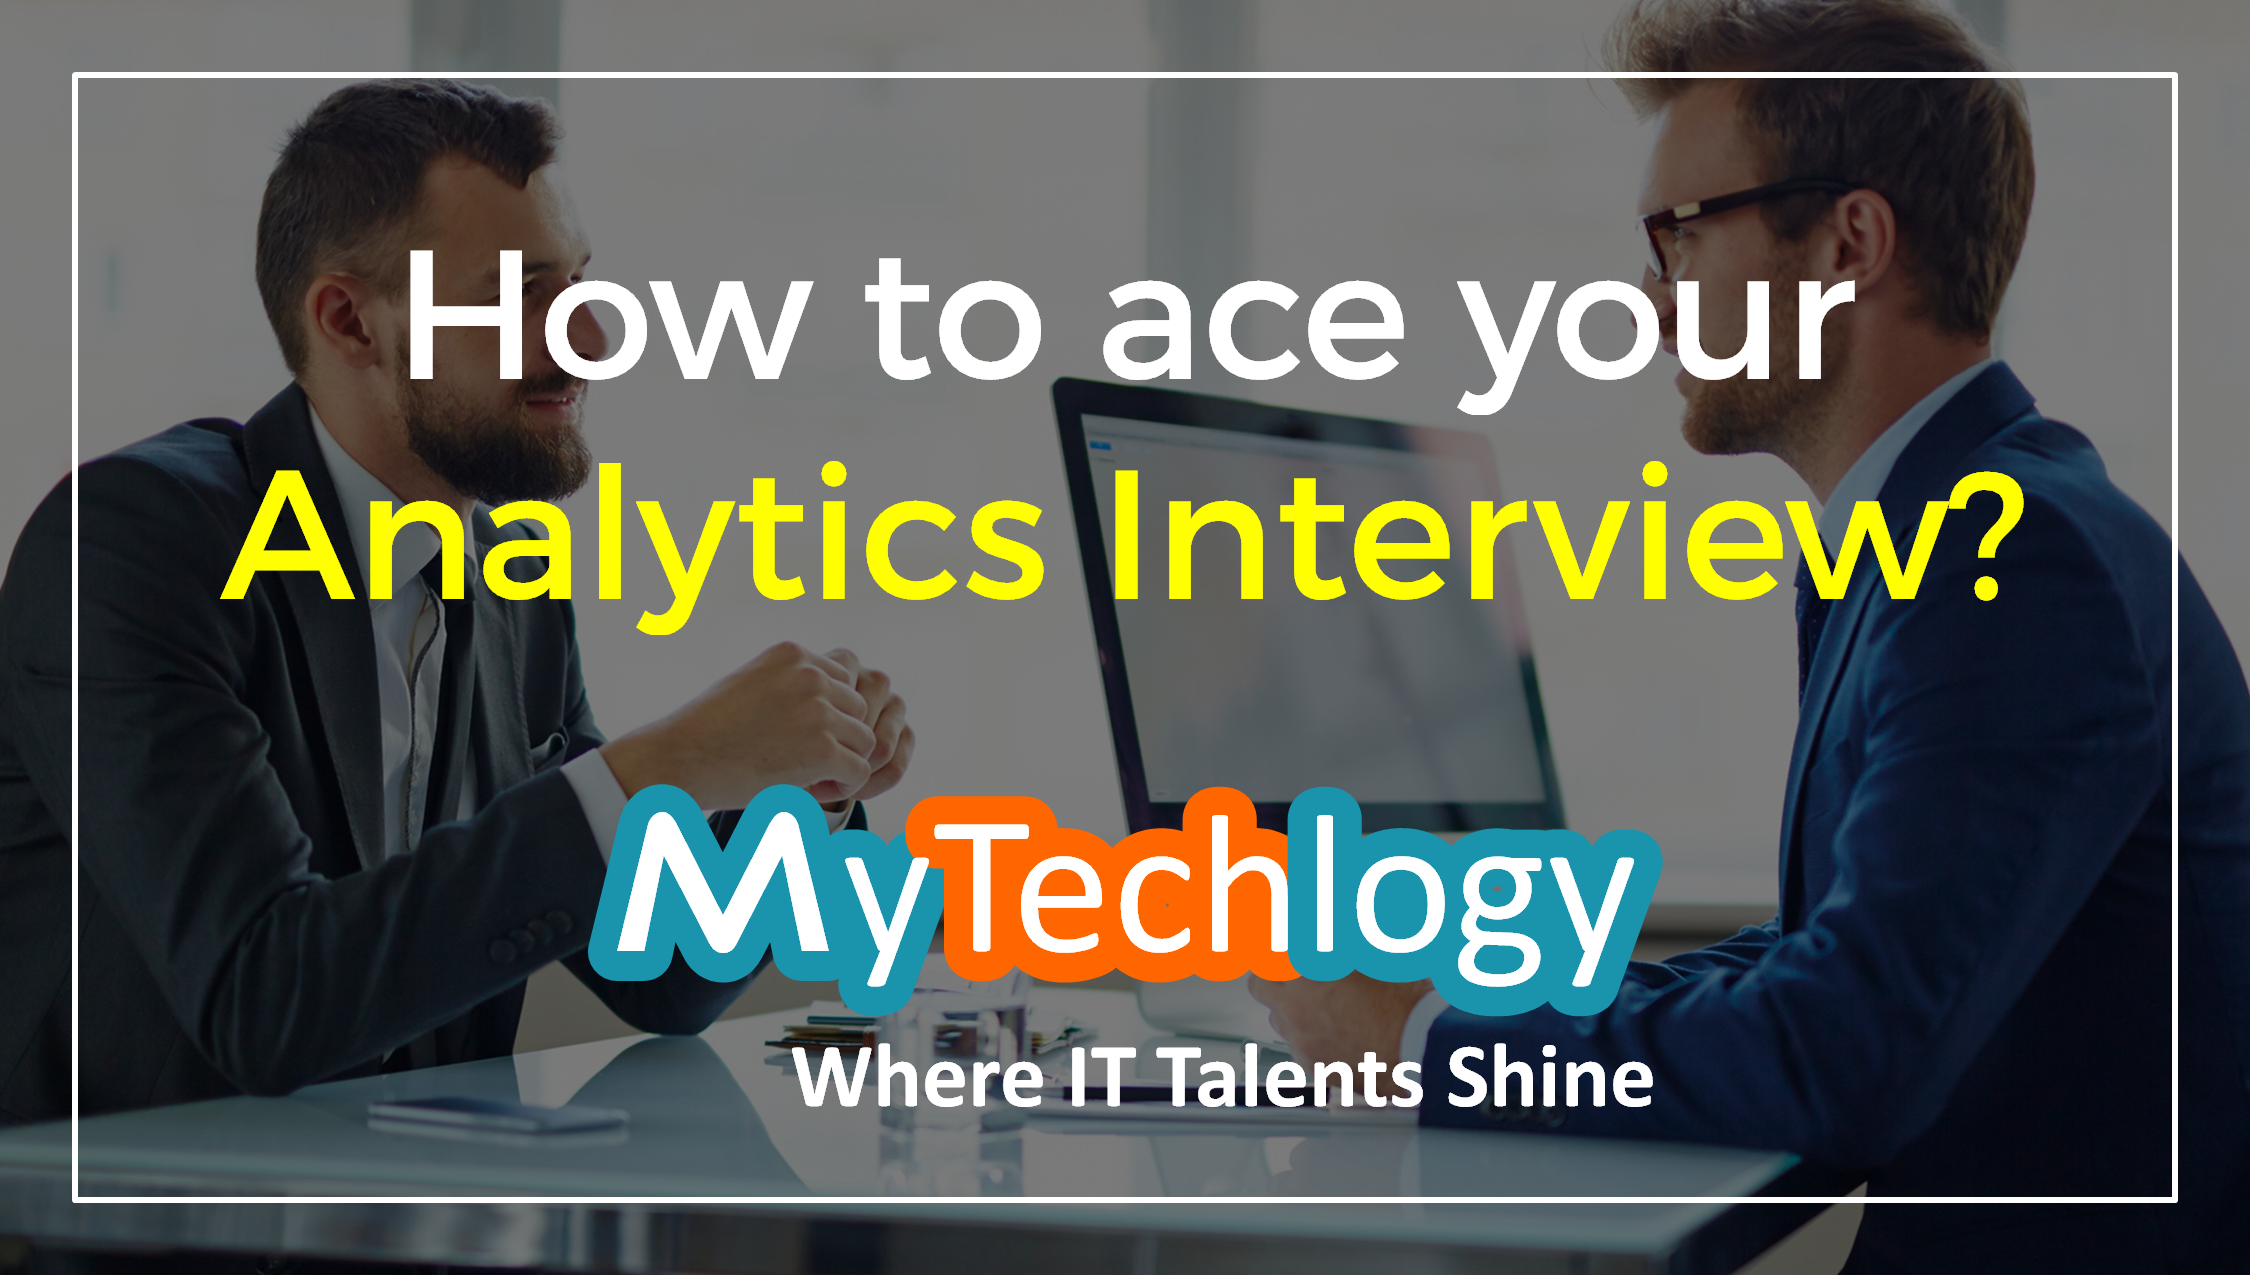 How to ace your Data Analytics Interview - Image 1